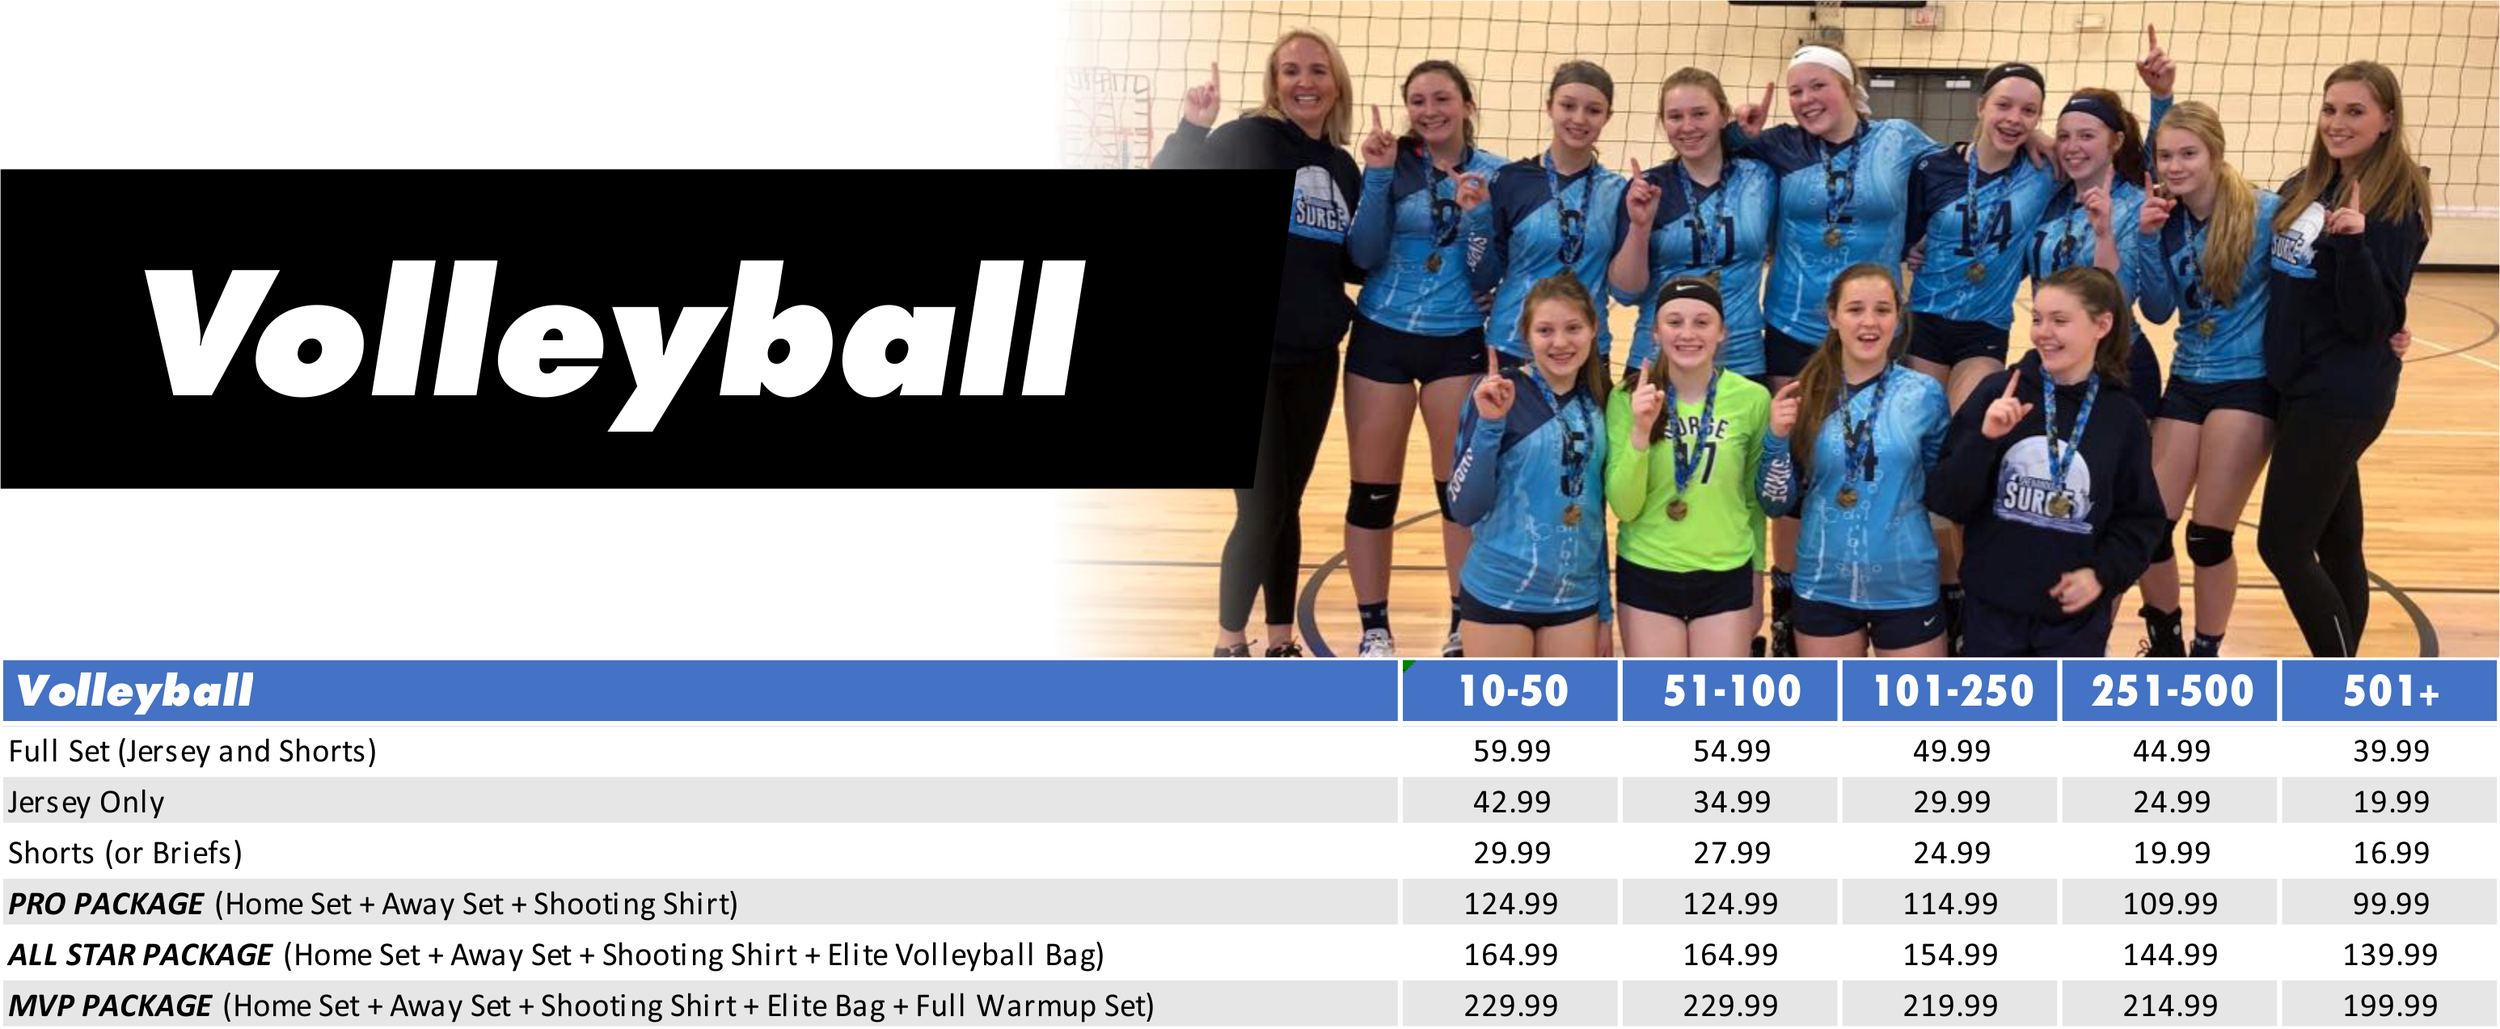 05 Volleyball wooterapparel pricing.png